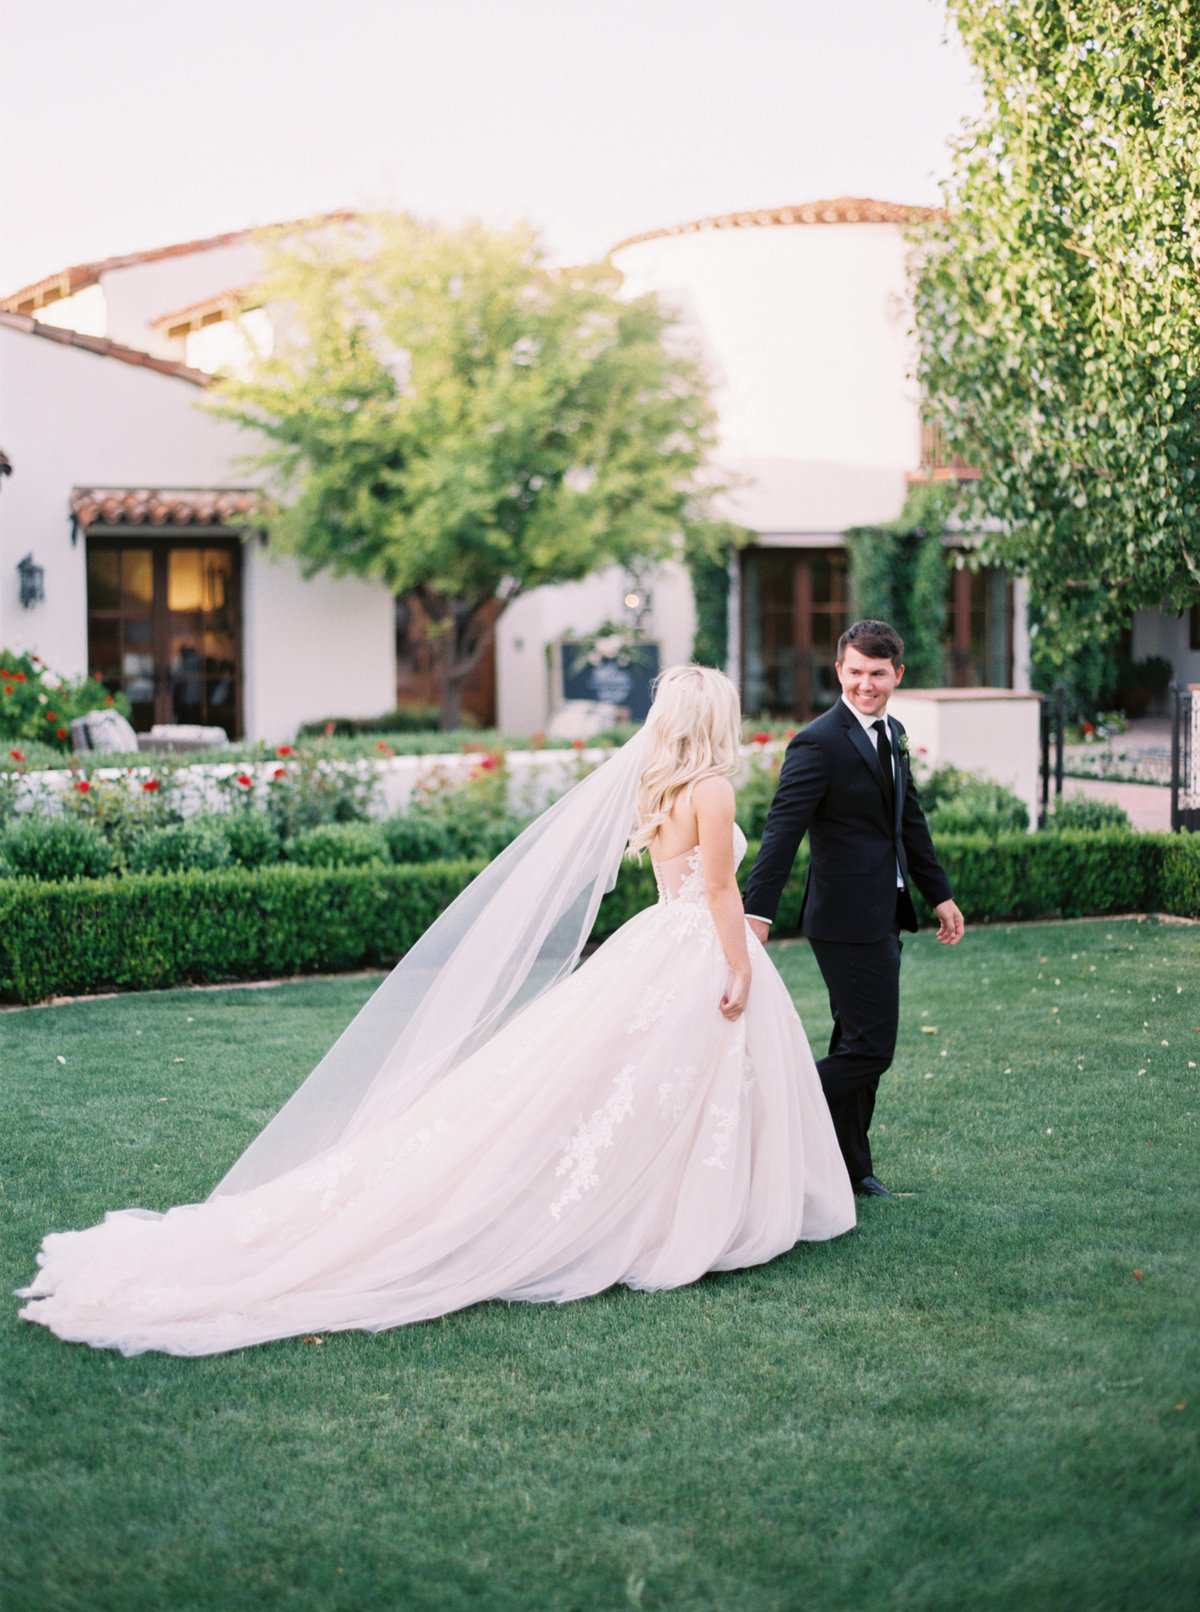 Kendall & Joe | Paradise Valley, Arizona | Mary Claire Photography | Arizona & Destination Fine Art Wedding Photographer